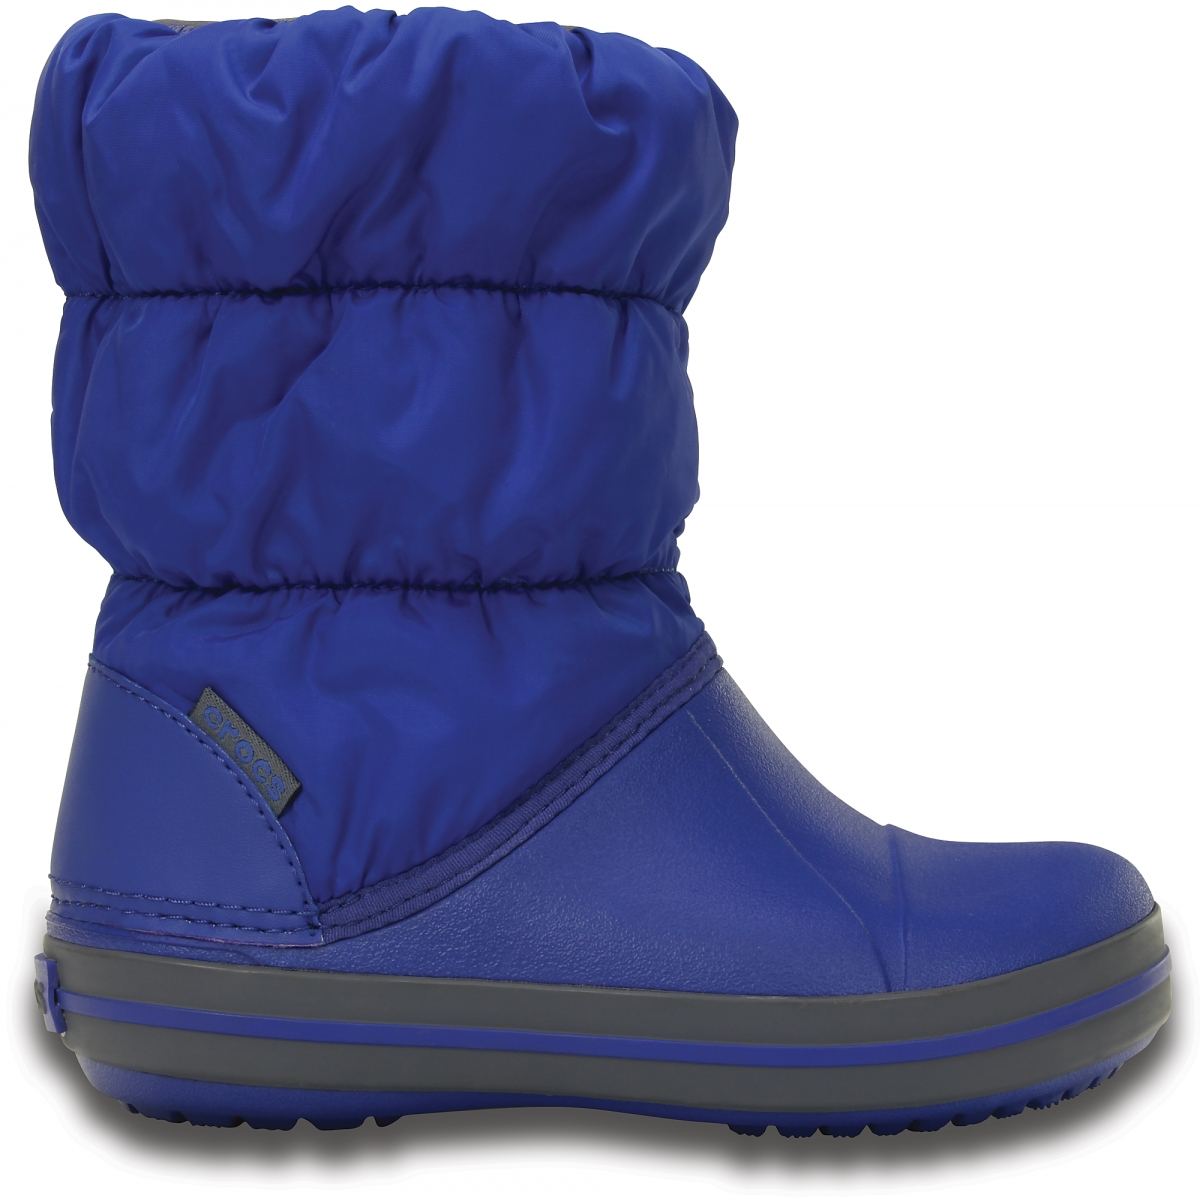 Crocs Winter Puff Boot Kids - Cerulean Blue/Light Grey, C13 (30-31)